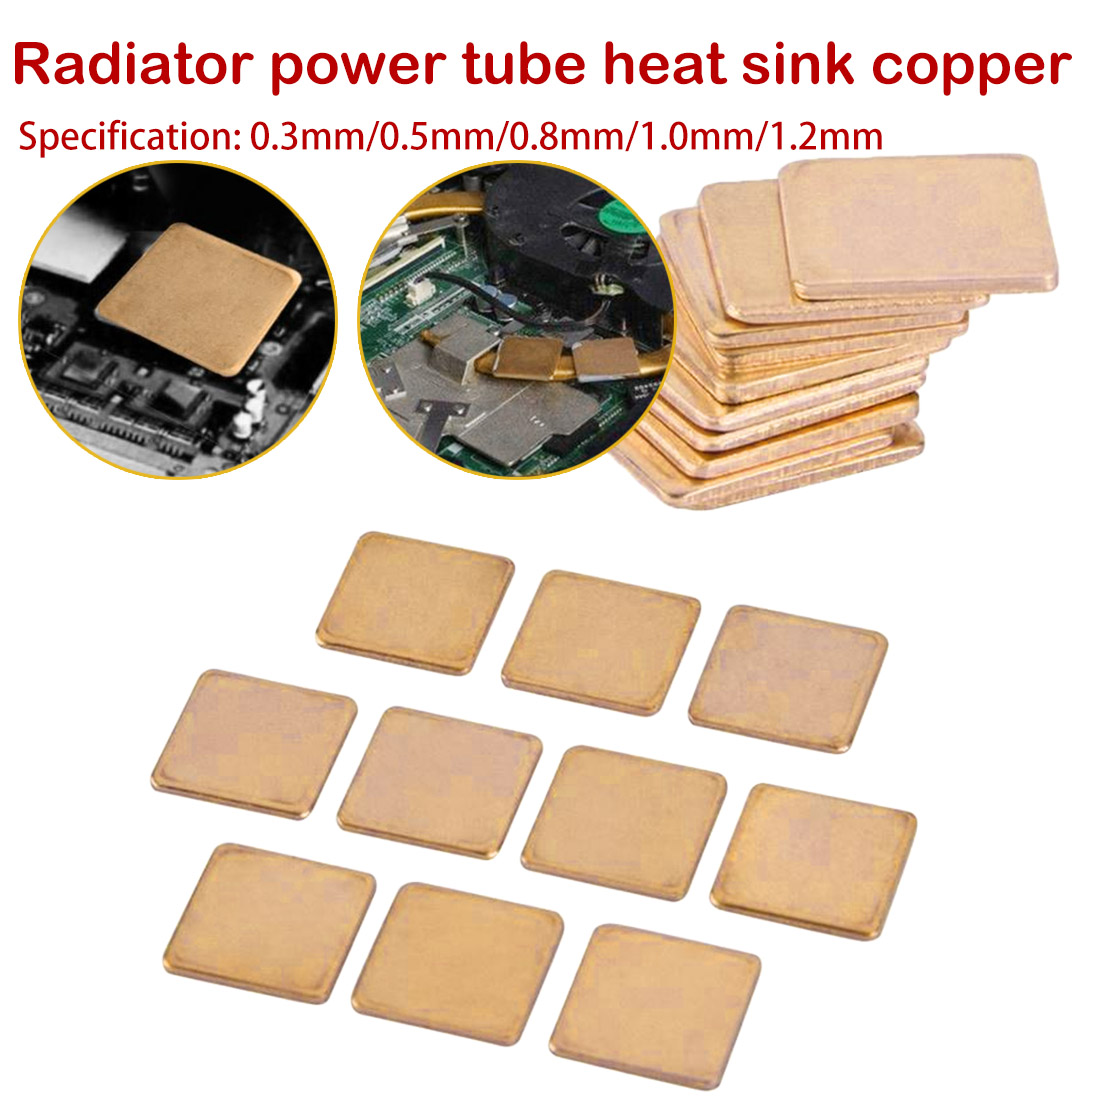 Copper Pad Copper Shim:15*15*1.2mm 20pcs Laptop GPU CPU Heatsink Thermal Pad